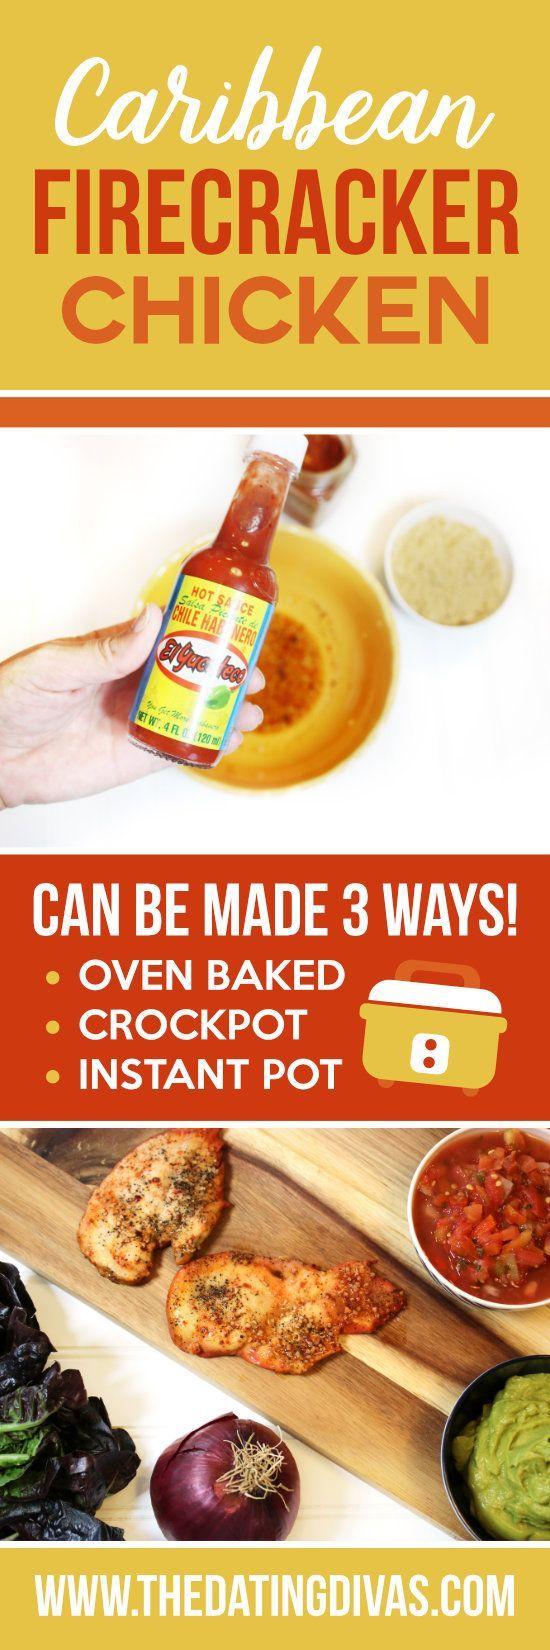 Calling all Insta-Pot lovers! Having meals that are QUICK and EASY are necessary these days! WHAT'S YOUR GO-TO QUICK DINNER?? We LOVED teaming up with El Yucateco® to try out and share this Caribbean Firecracker Chicken Recipe (ad)! Our favorite part? You can make it in the oven, crockpot OR Instant Pot. #KingofFlavor #FieldToBottle #ad